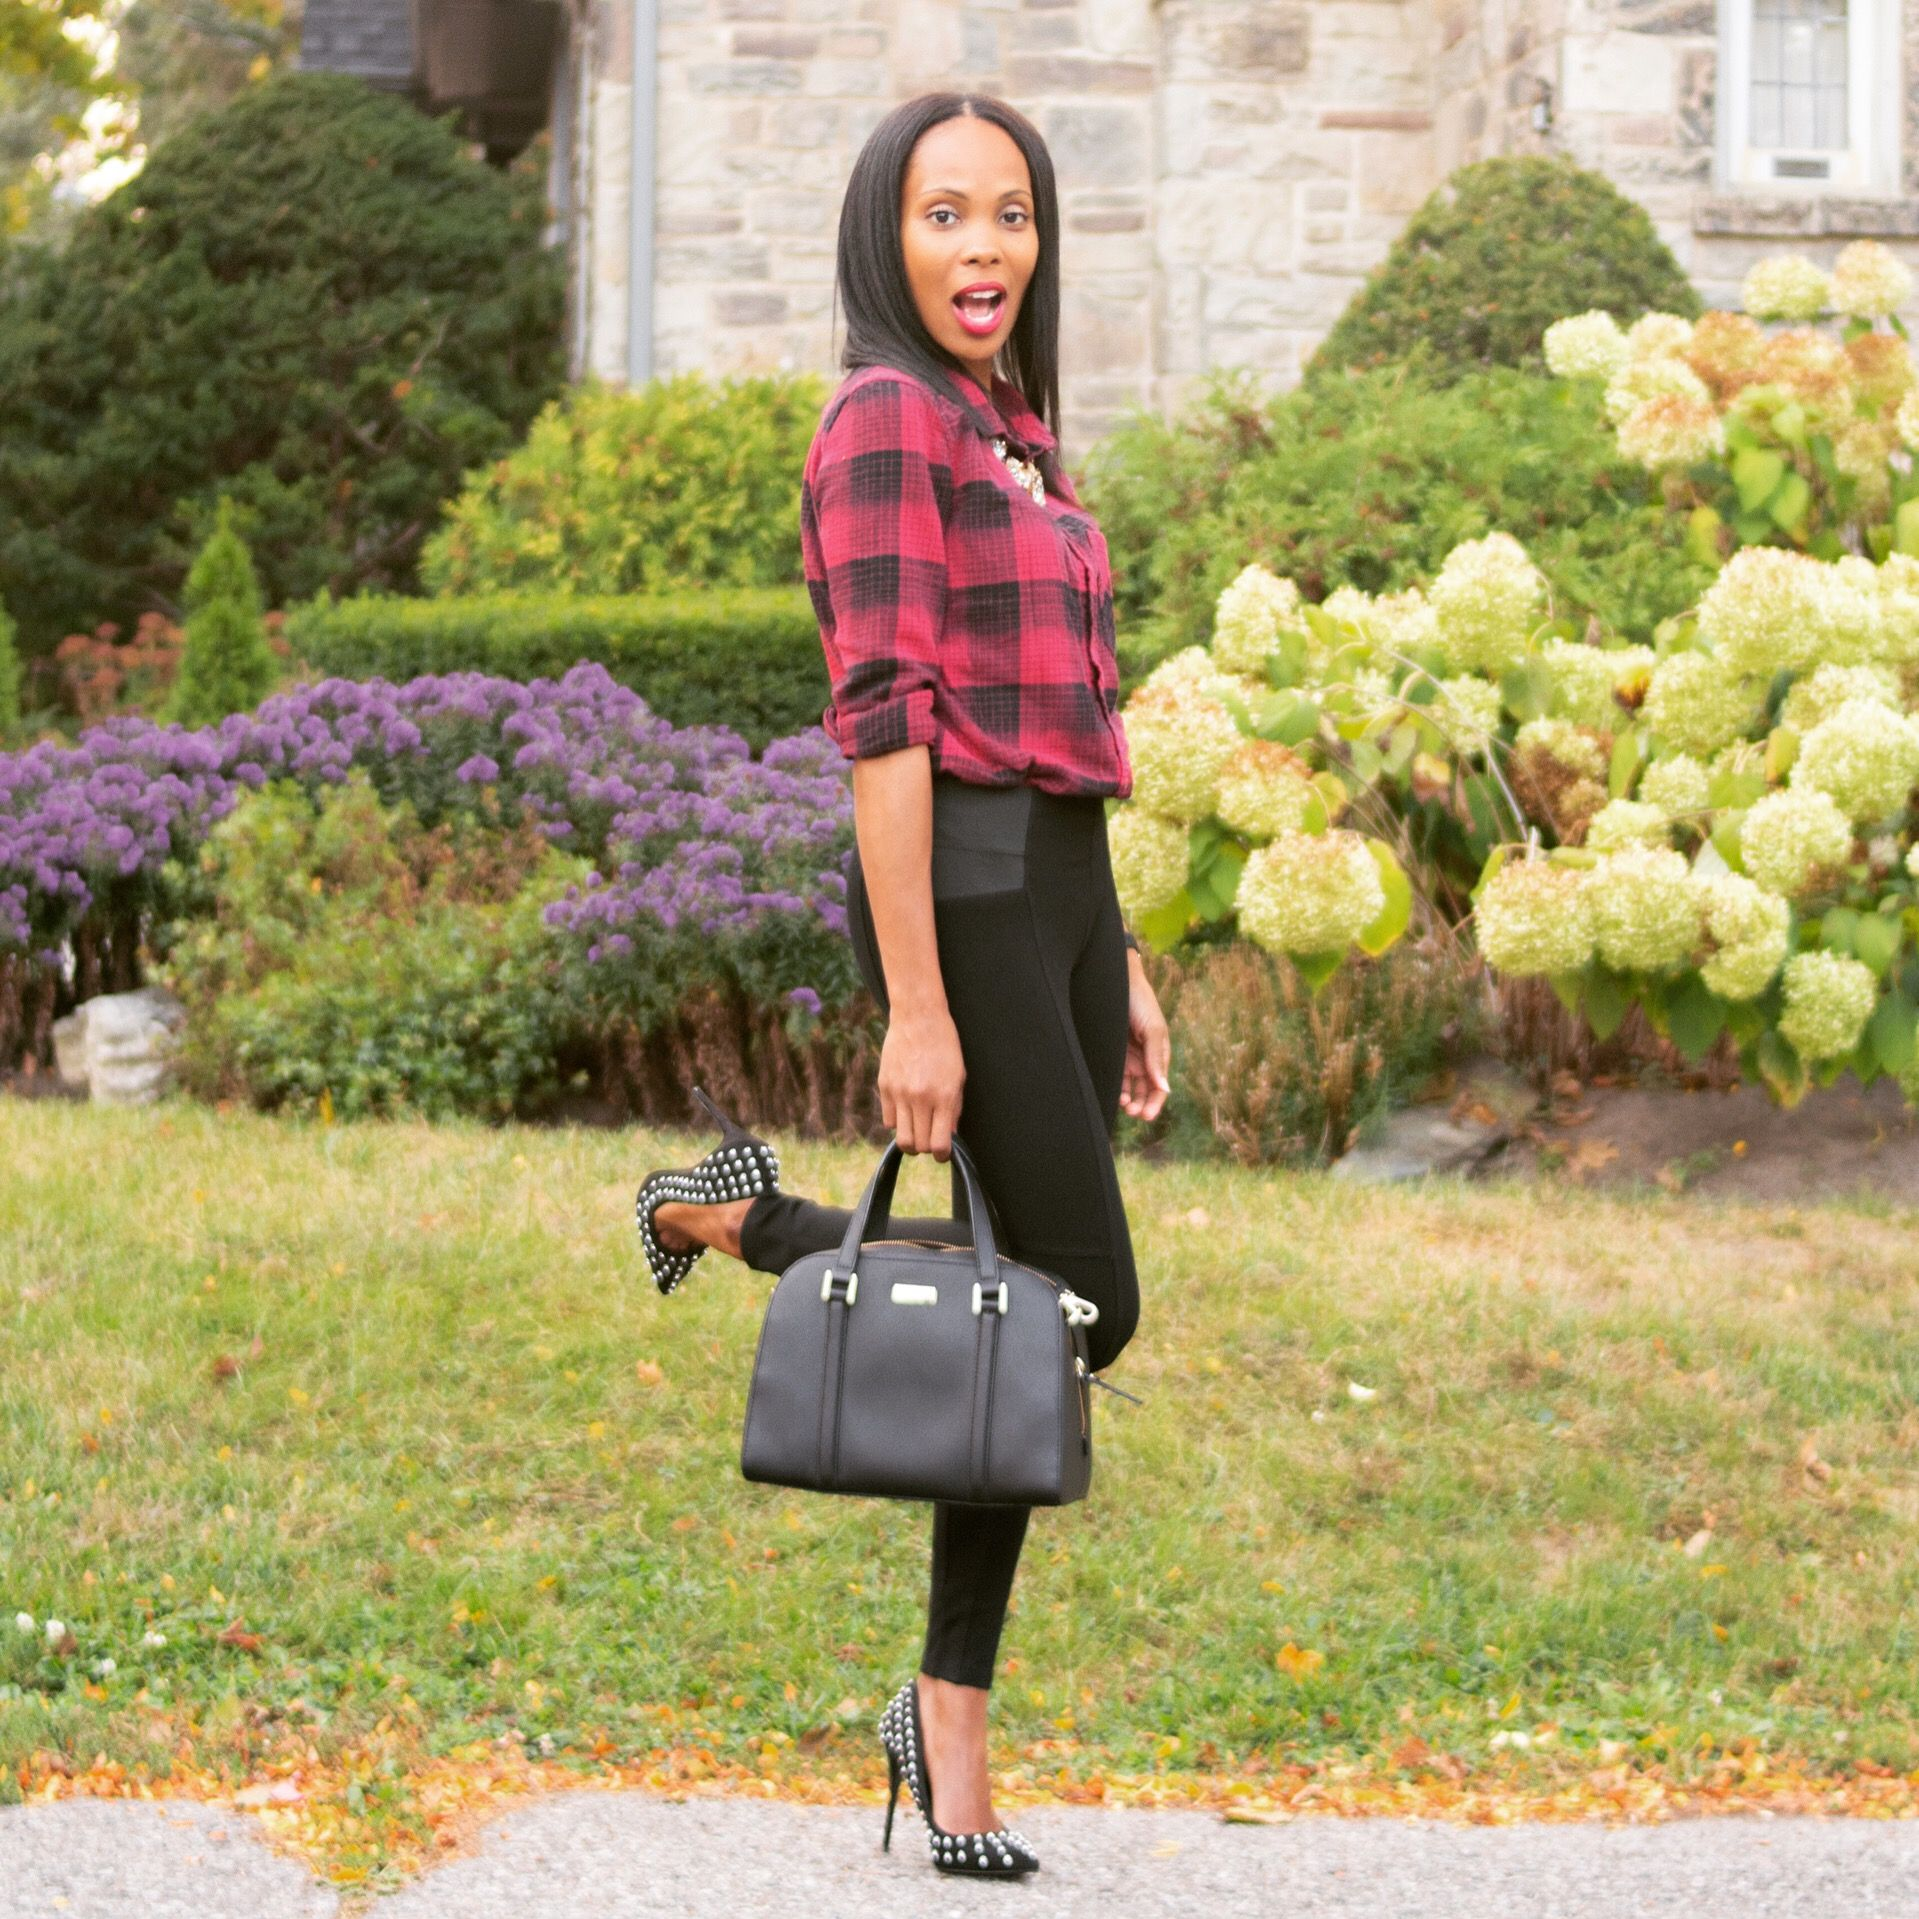 Dress up flannel shirt  How To Wear A Plaid Or Flannel Shirt For the Office  Plaid